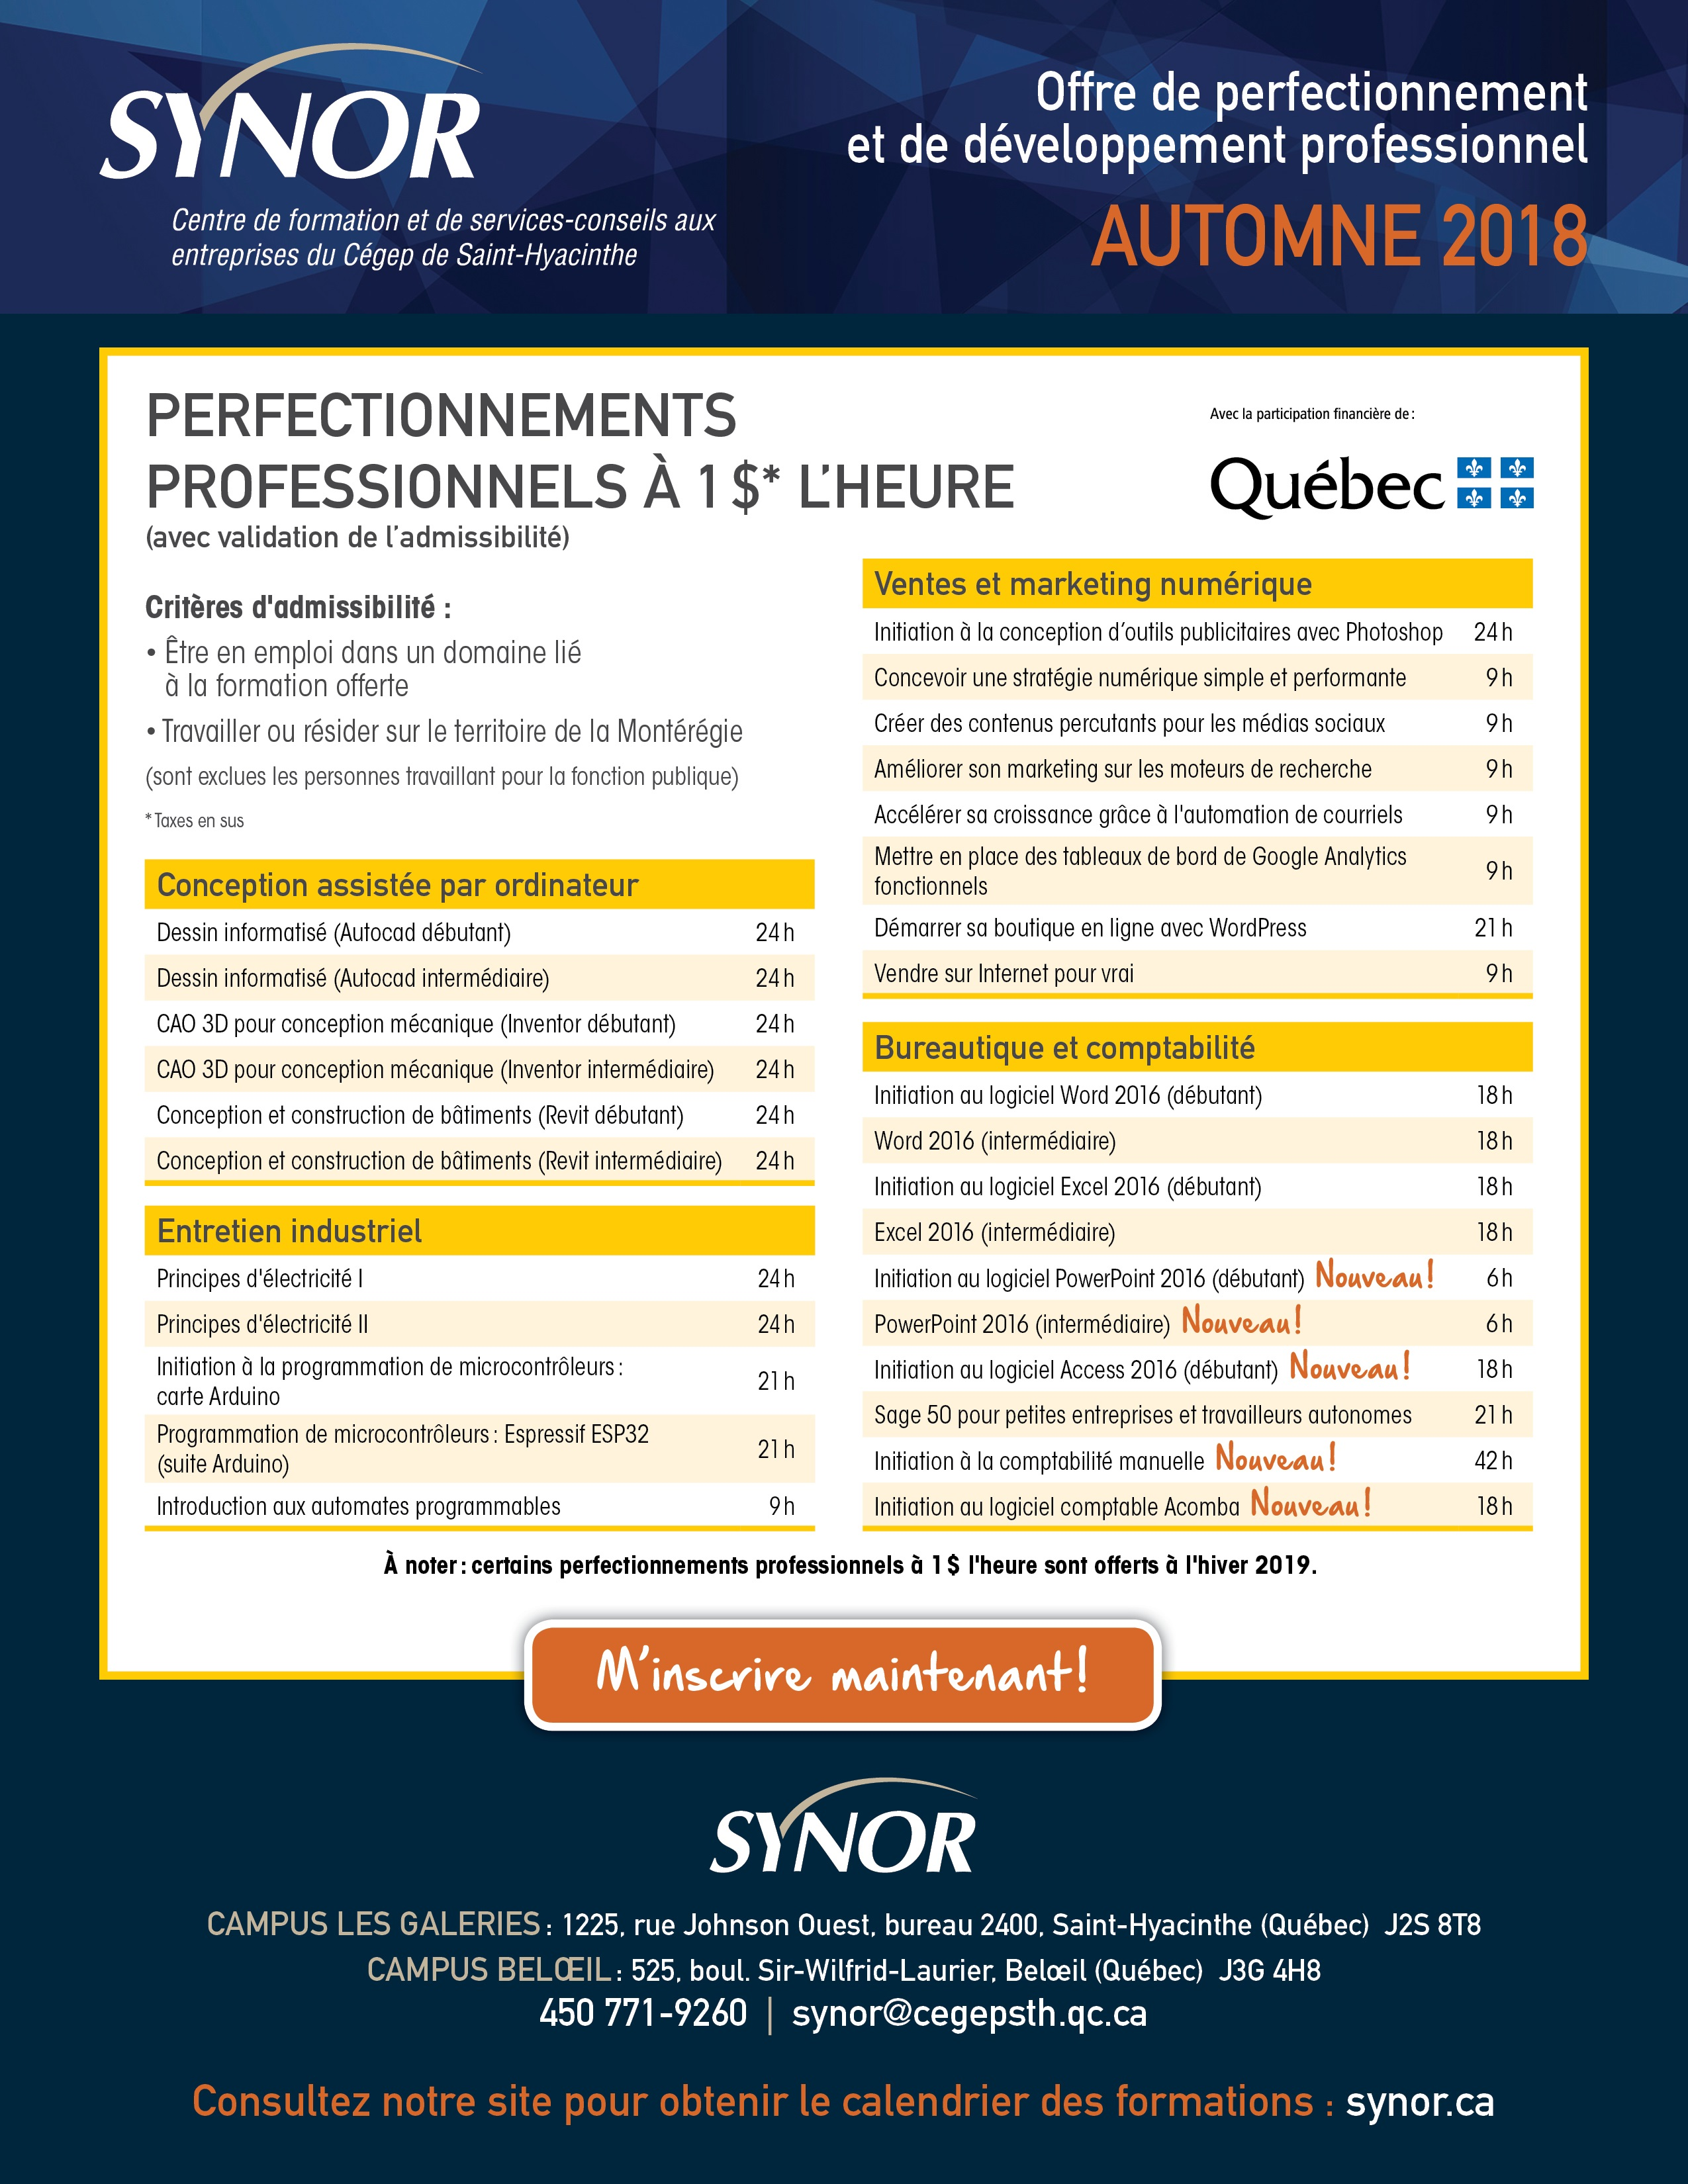 OffreCoursA18 - SYNOR-perfectionnement